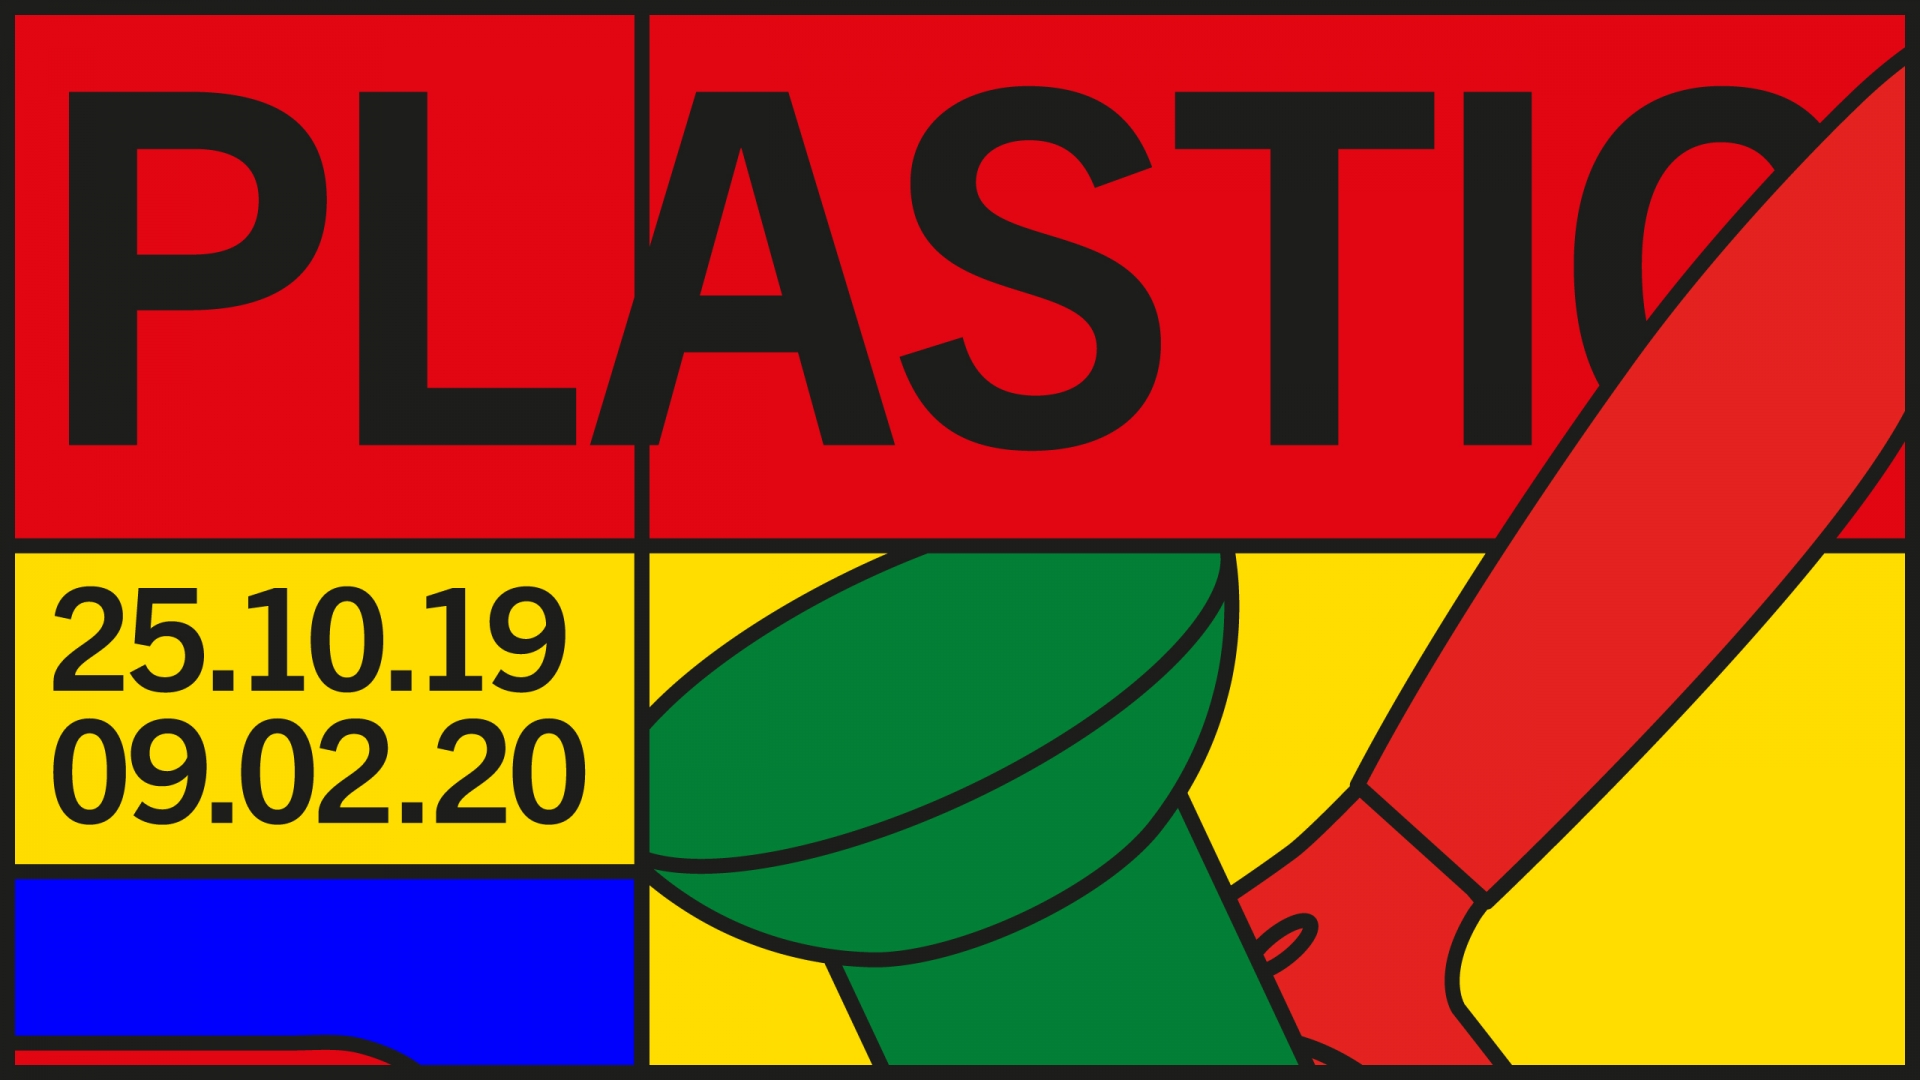 PLASTIC EXHIBITION OPENING OCTOBER 25th.